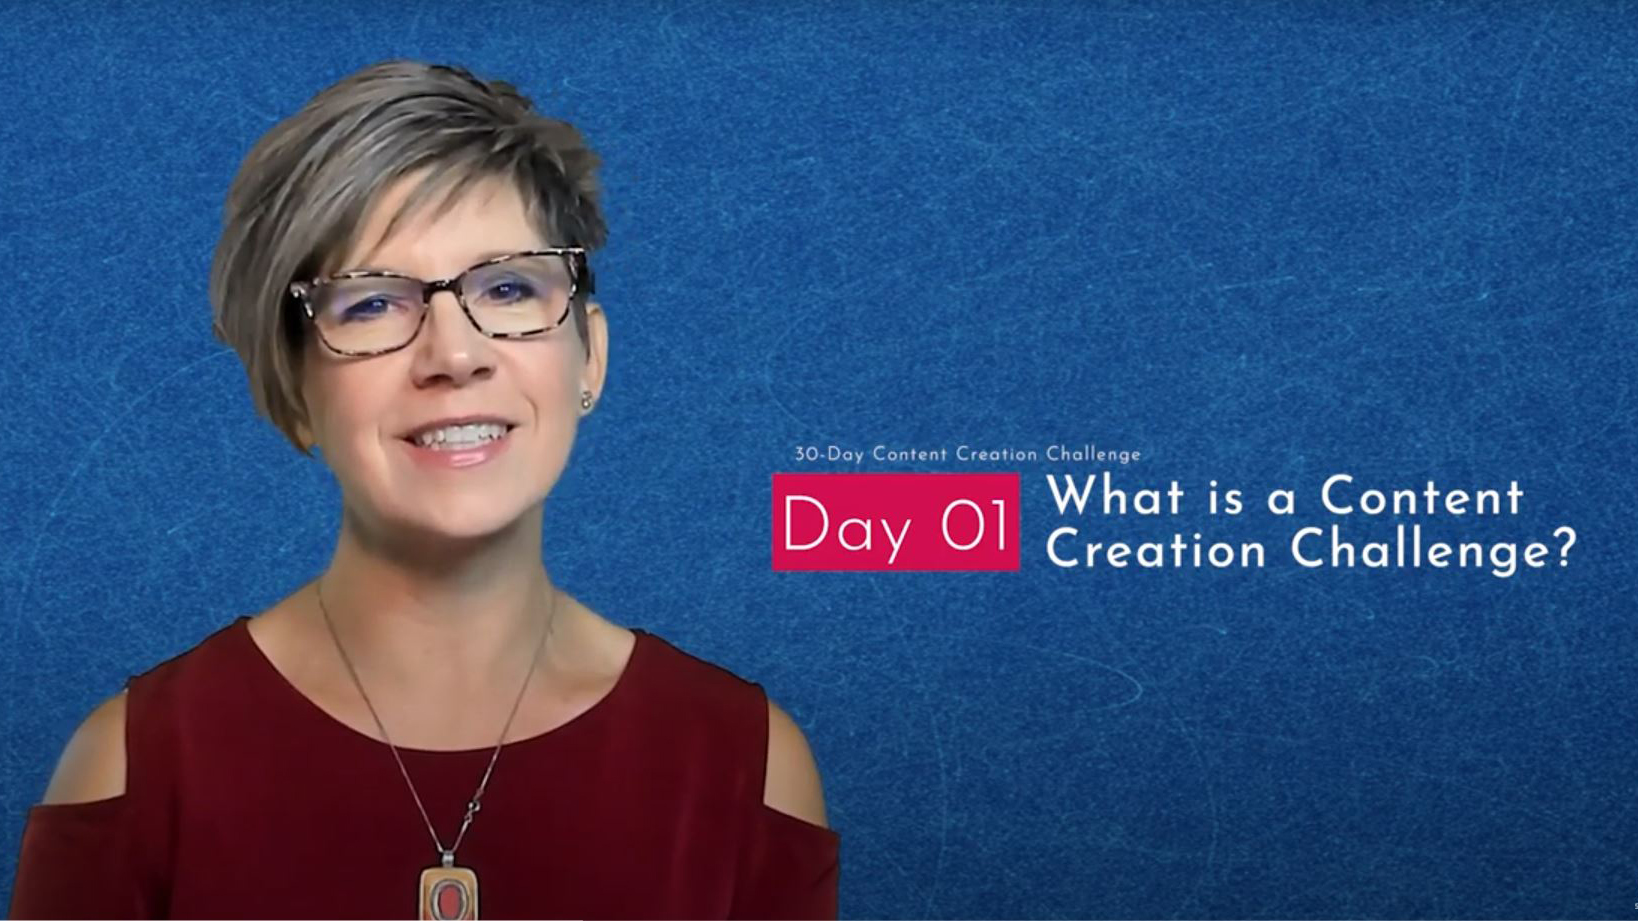 Read: Why I Started a 30-Day Content Creation Challenge